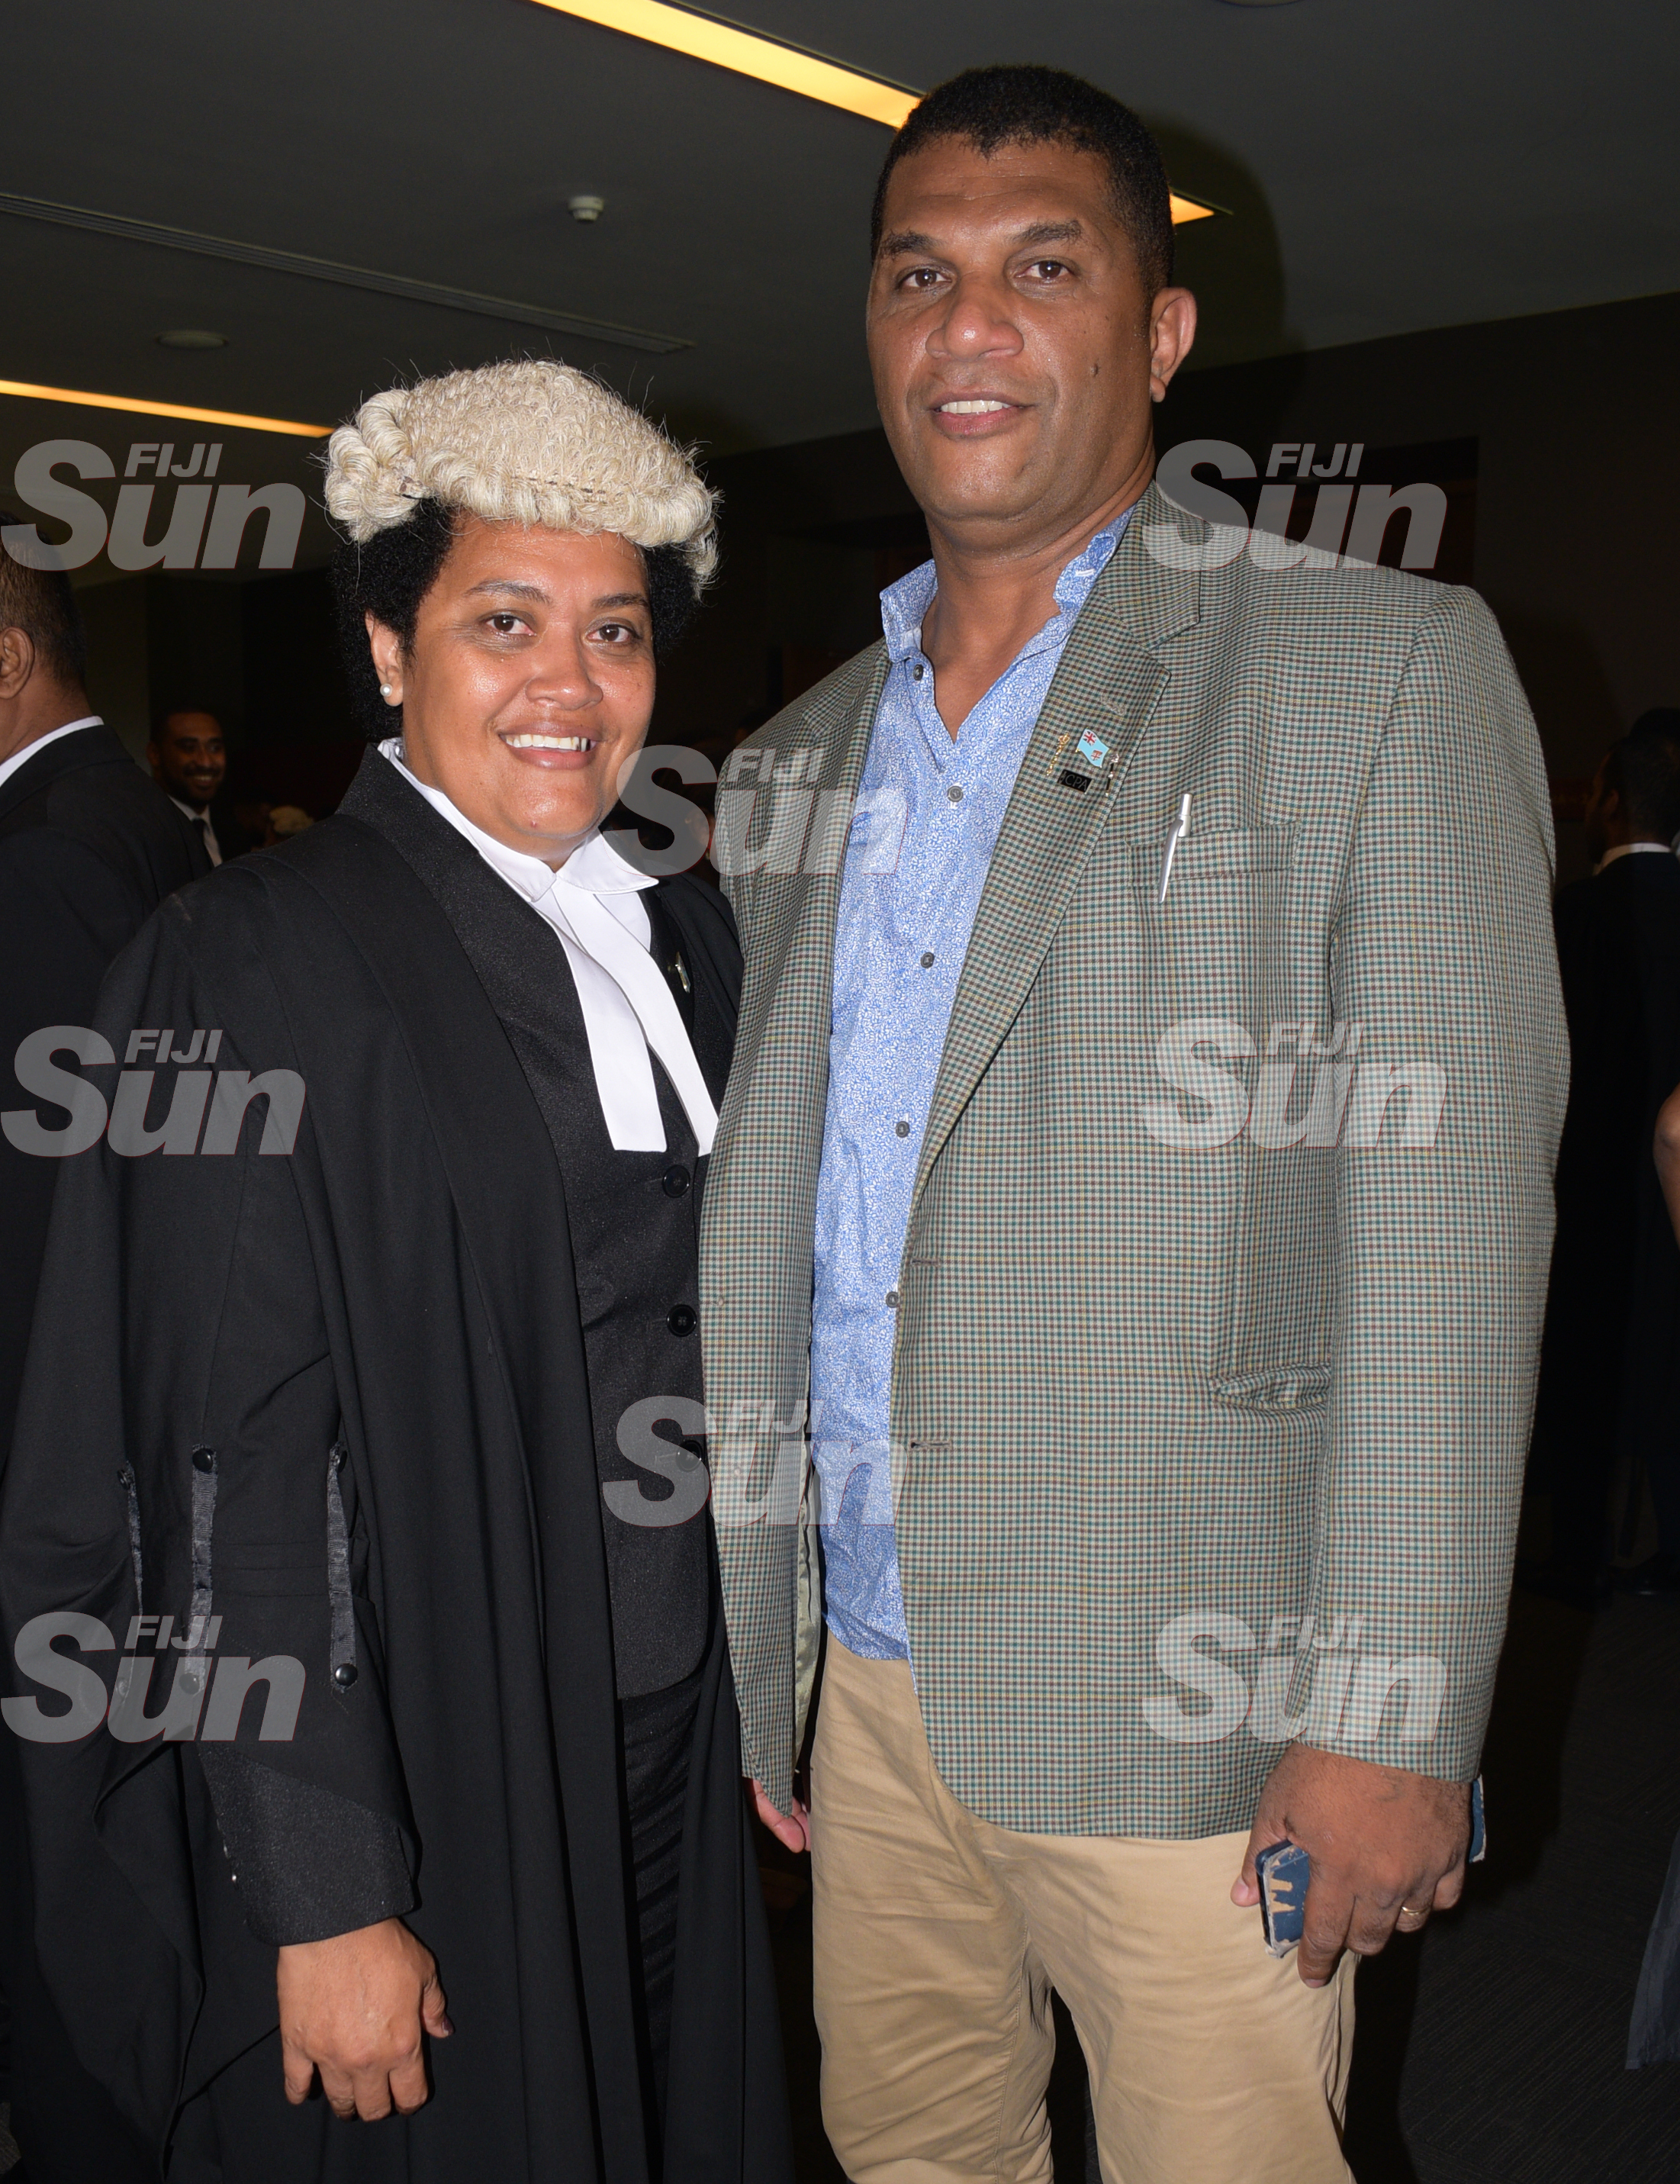 Saniana Radrodro with husband Aseri Radrodro after admission to Bar by acting Chief Justice Kamal Kumar on January 31, 2020. Photo: Ronald Kumar.